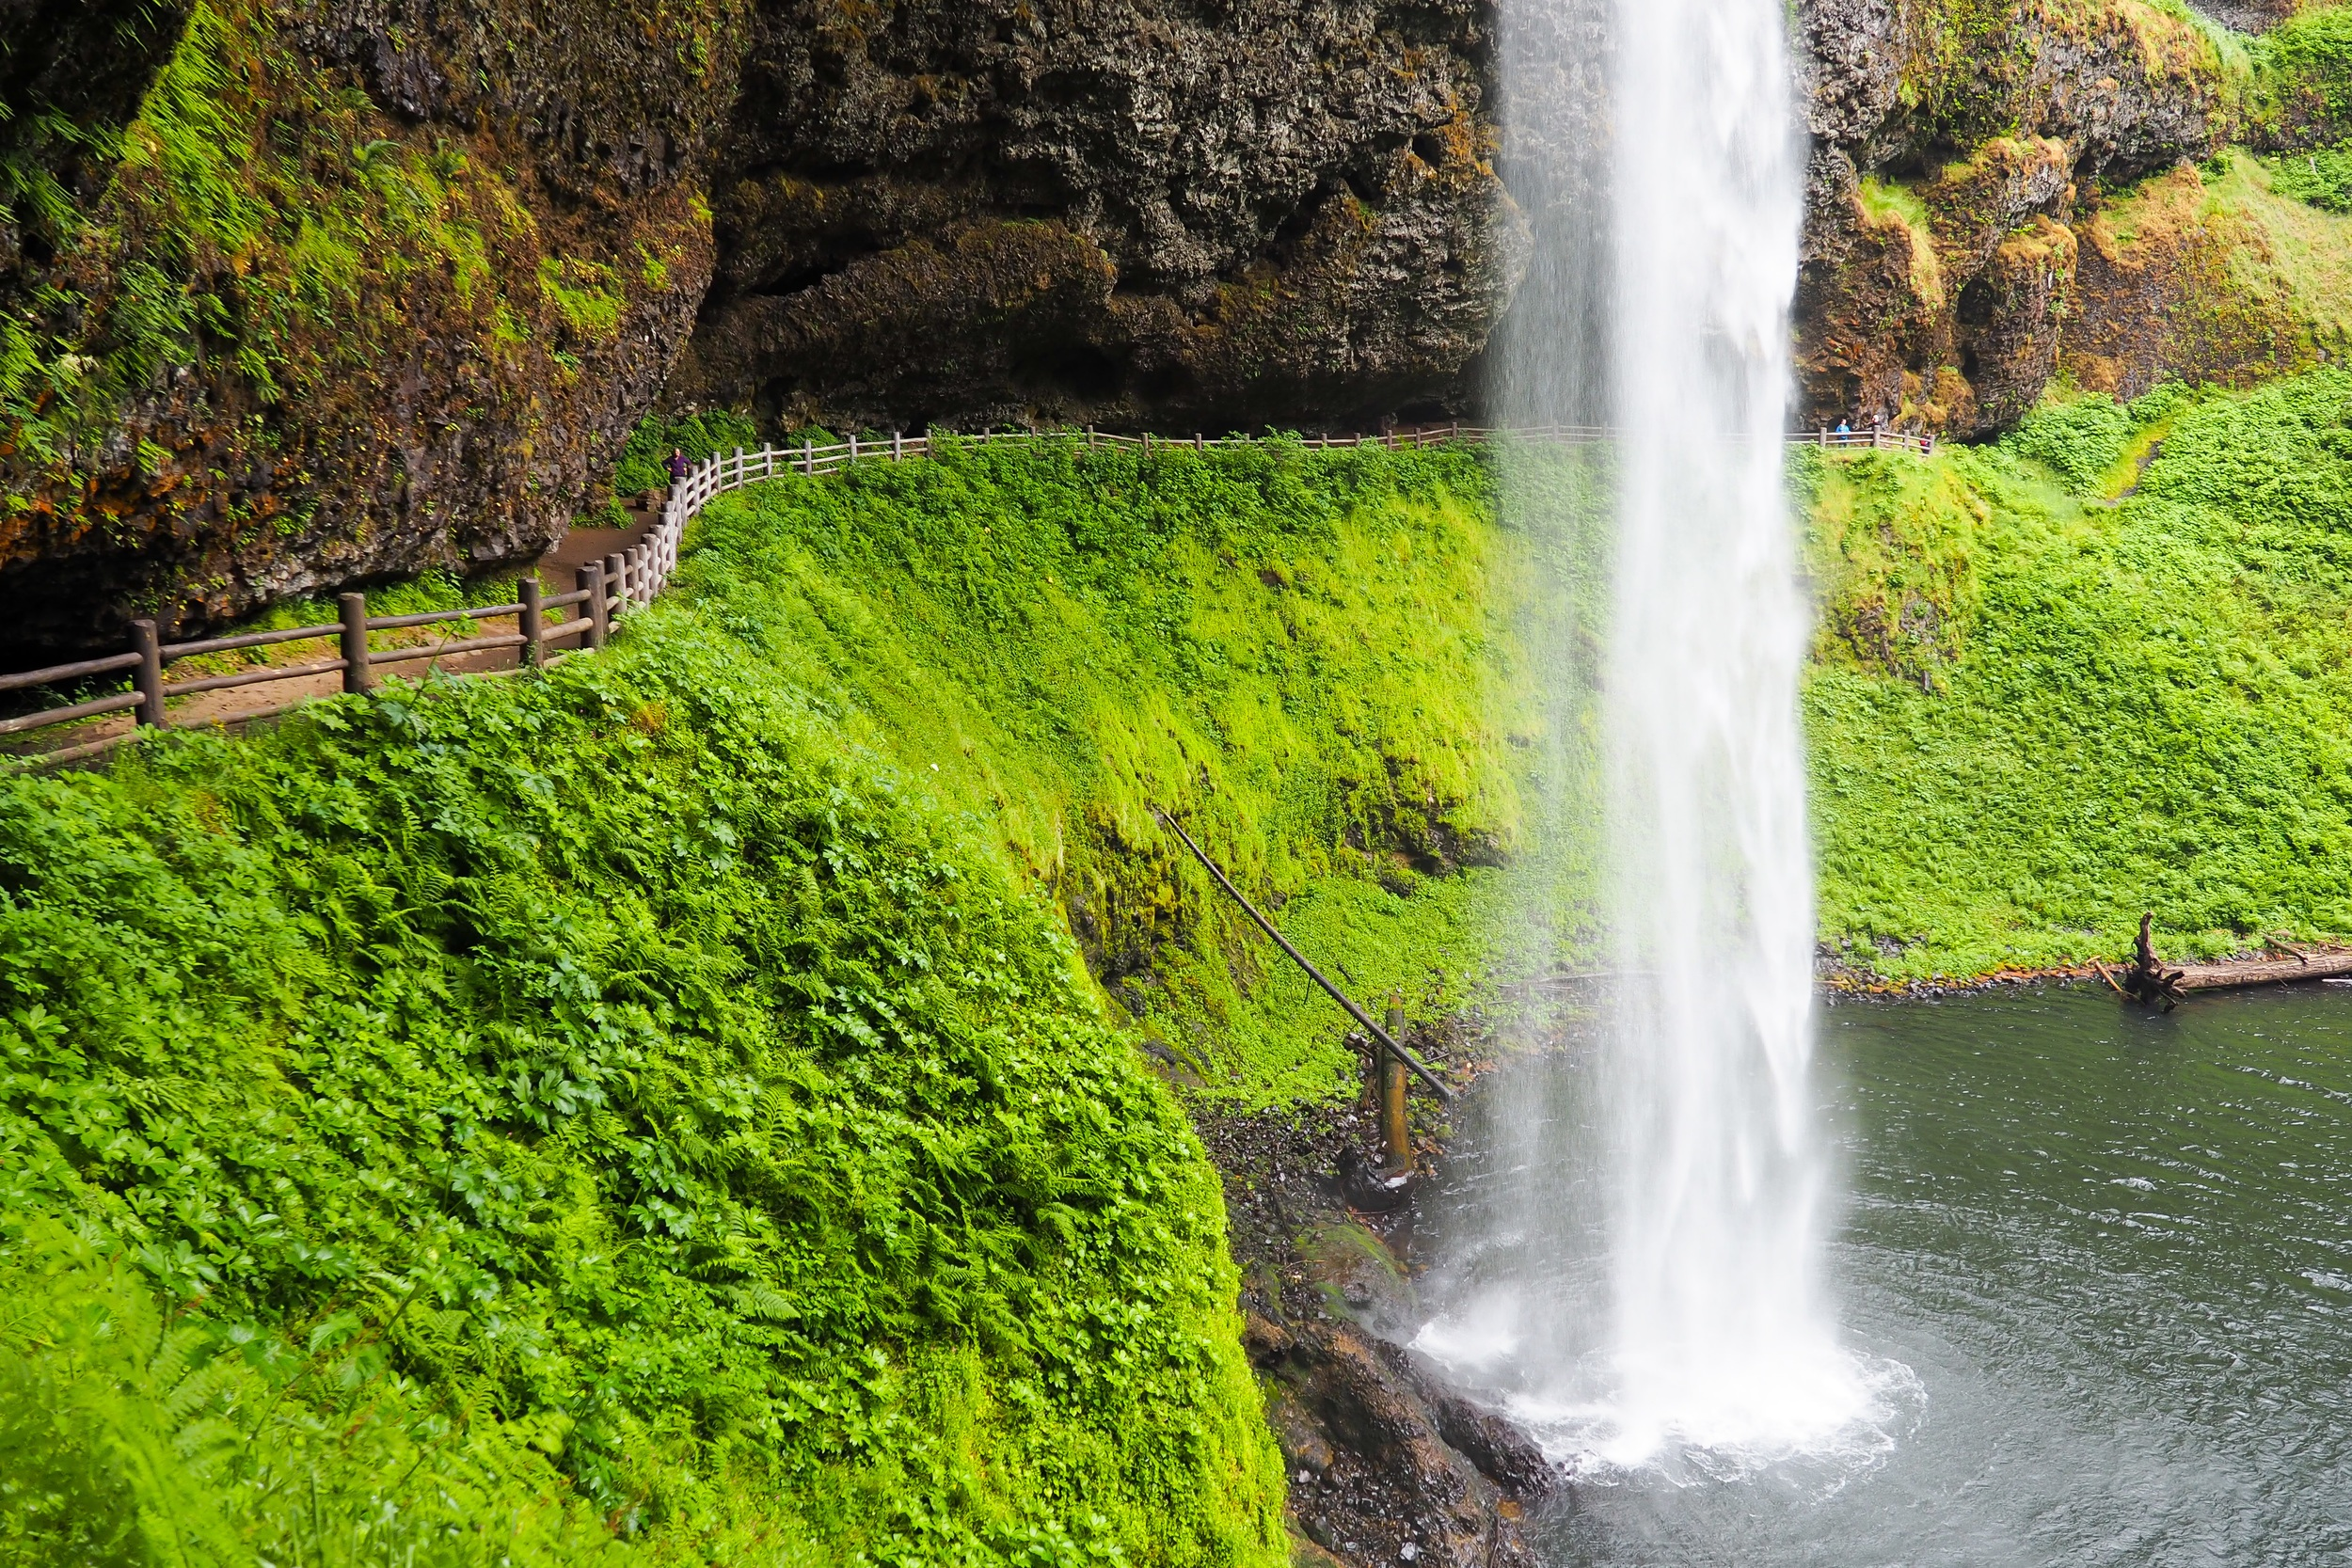 Planning a trip to Oregon in the near future? Check out this Portland itinerary, full of great foodie spots, waterfall hikes, and vista points! See all the highlights in 3 days in Portland!